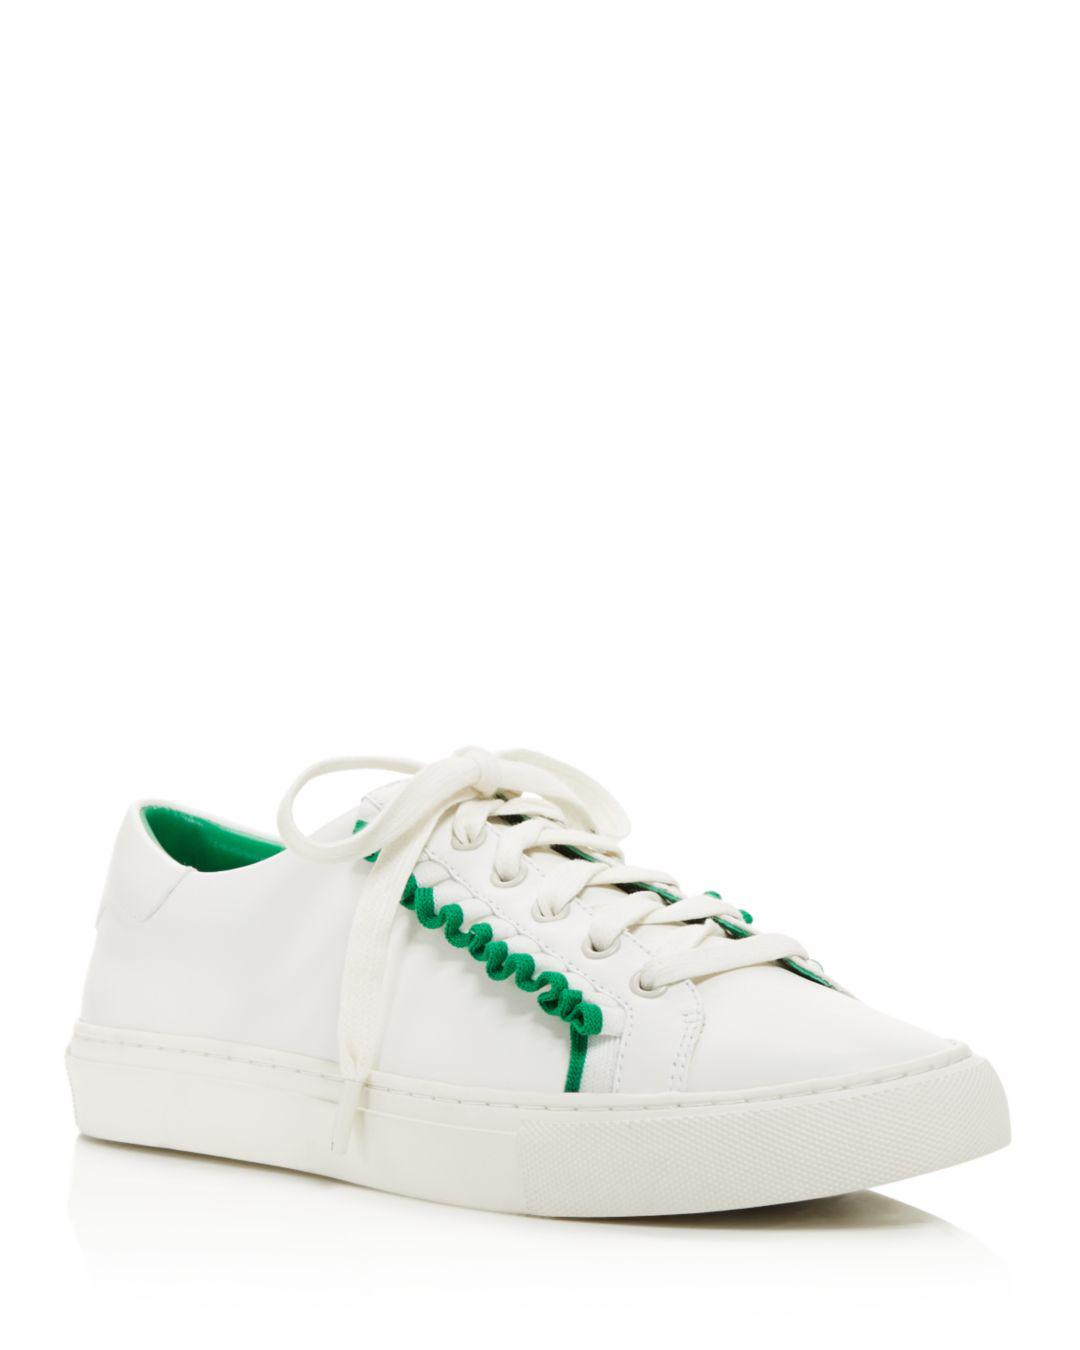 5cd709a09ba Lyst - Tory Sport Ruffle Low Top Lace Up Sneakers in White - Save 1%